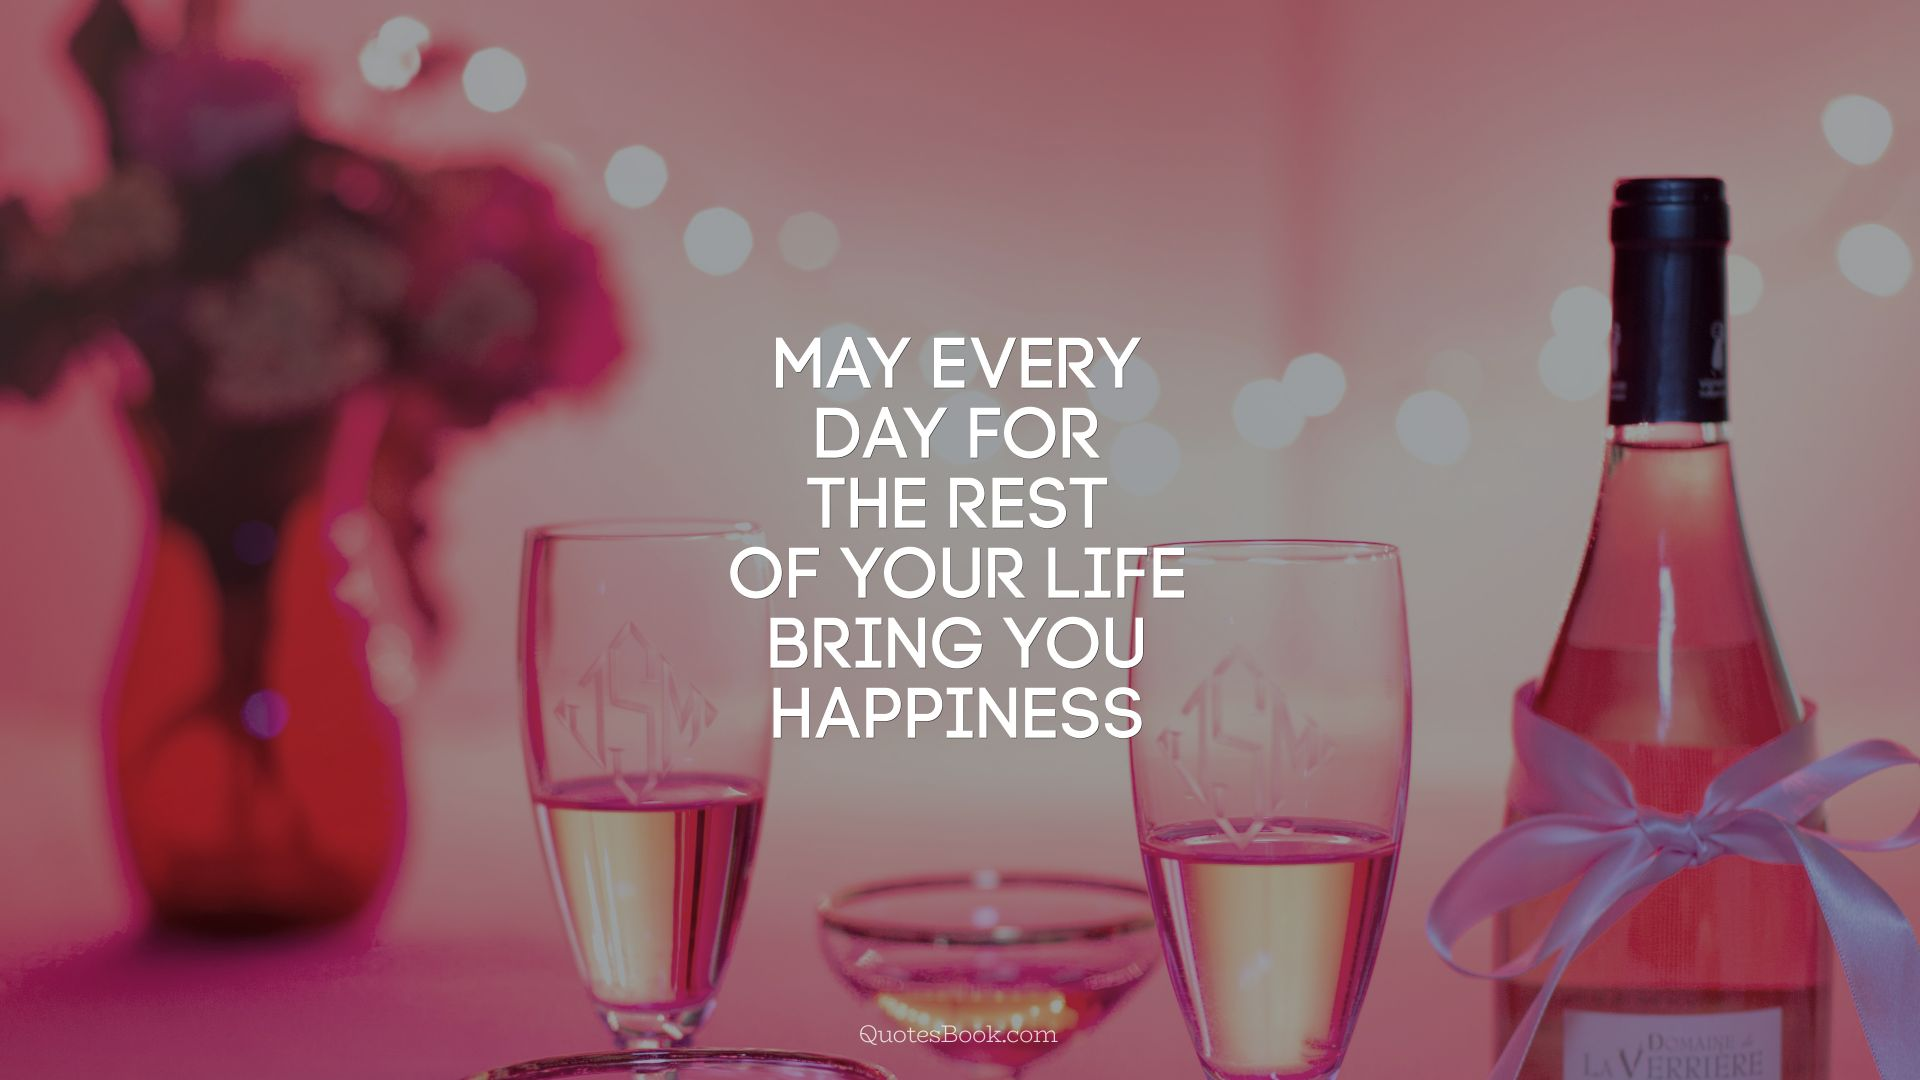 May every day for the rest of your life bring you happiness